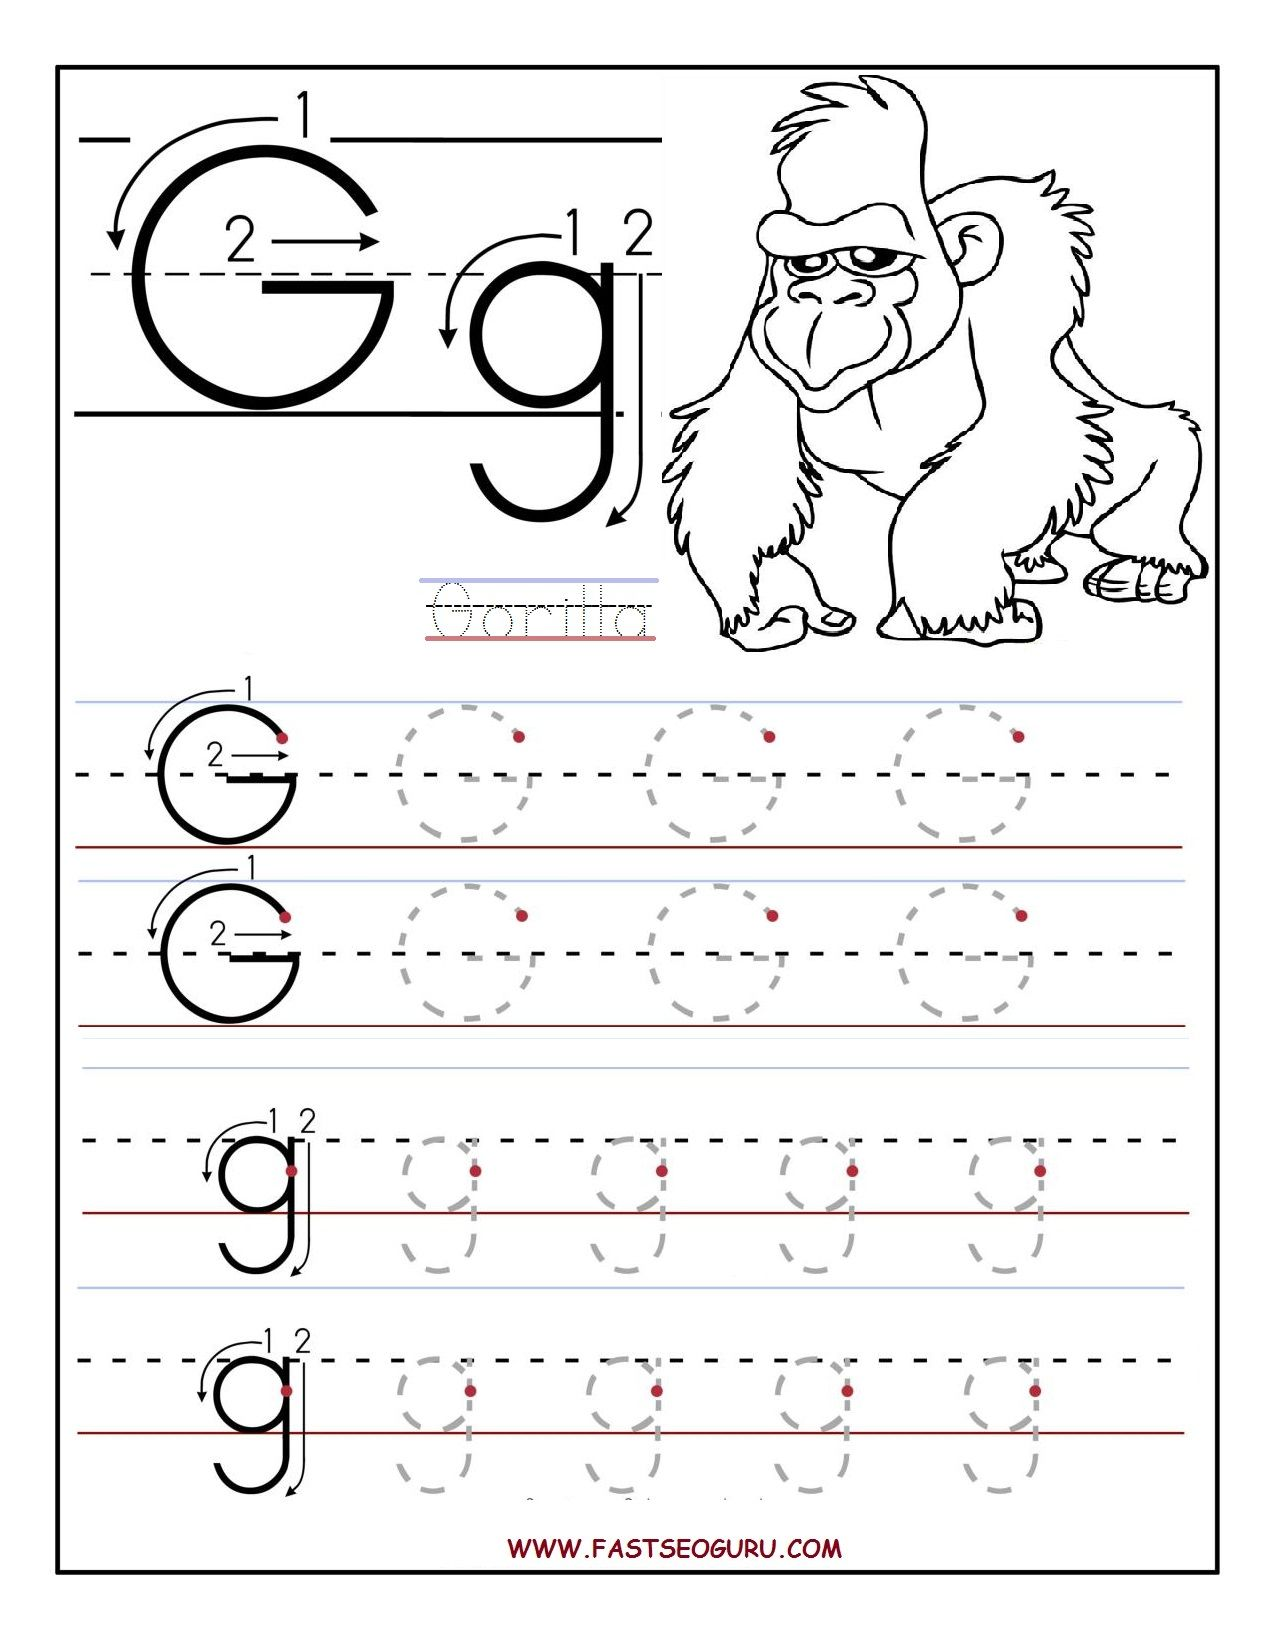 worksheets for preschoolers printable letter g tracing worksheets for preschool pre k. Black Bedroom Furniture Sets. Home Design Ideas